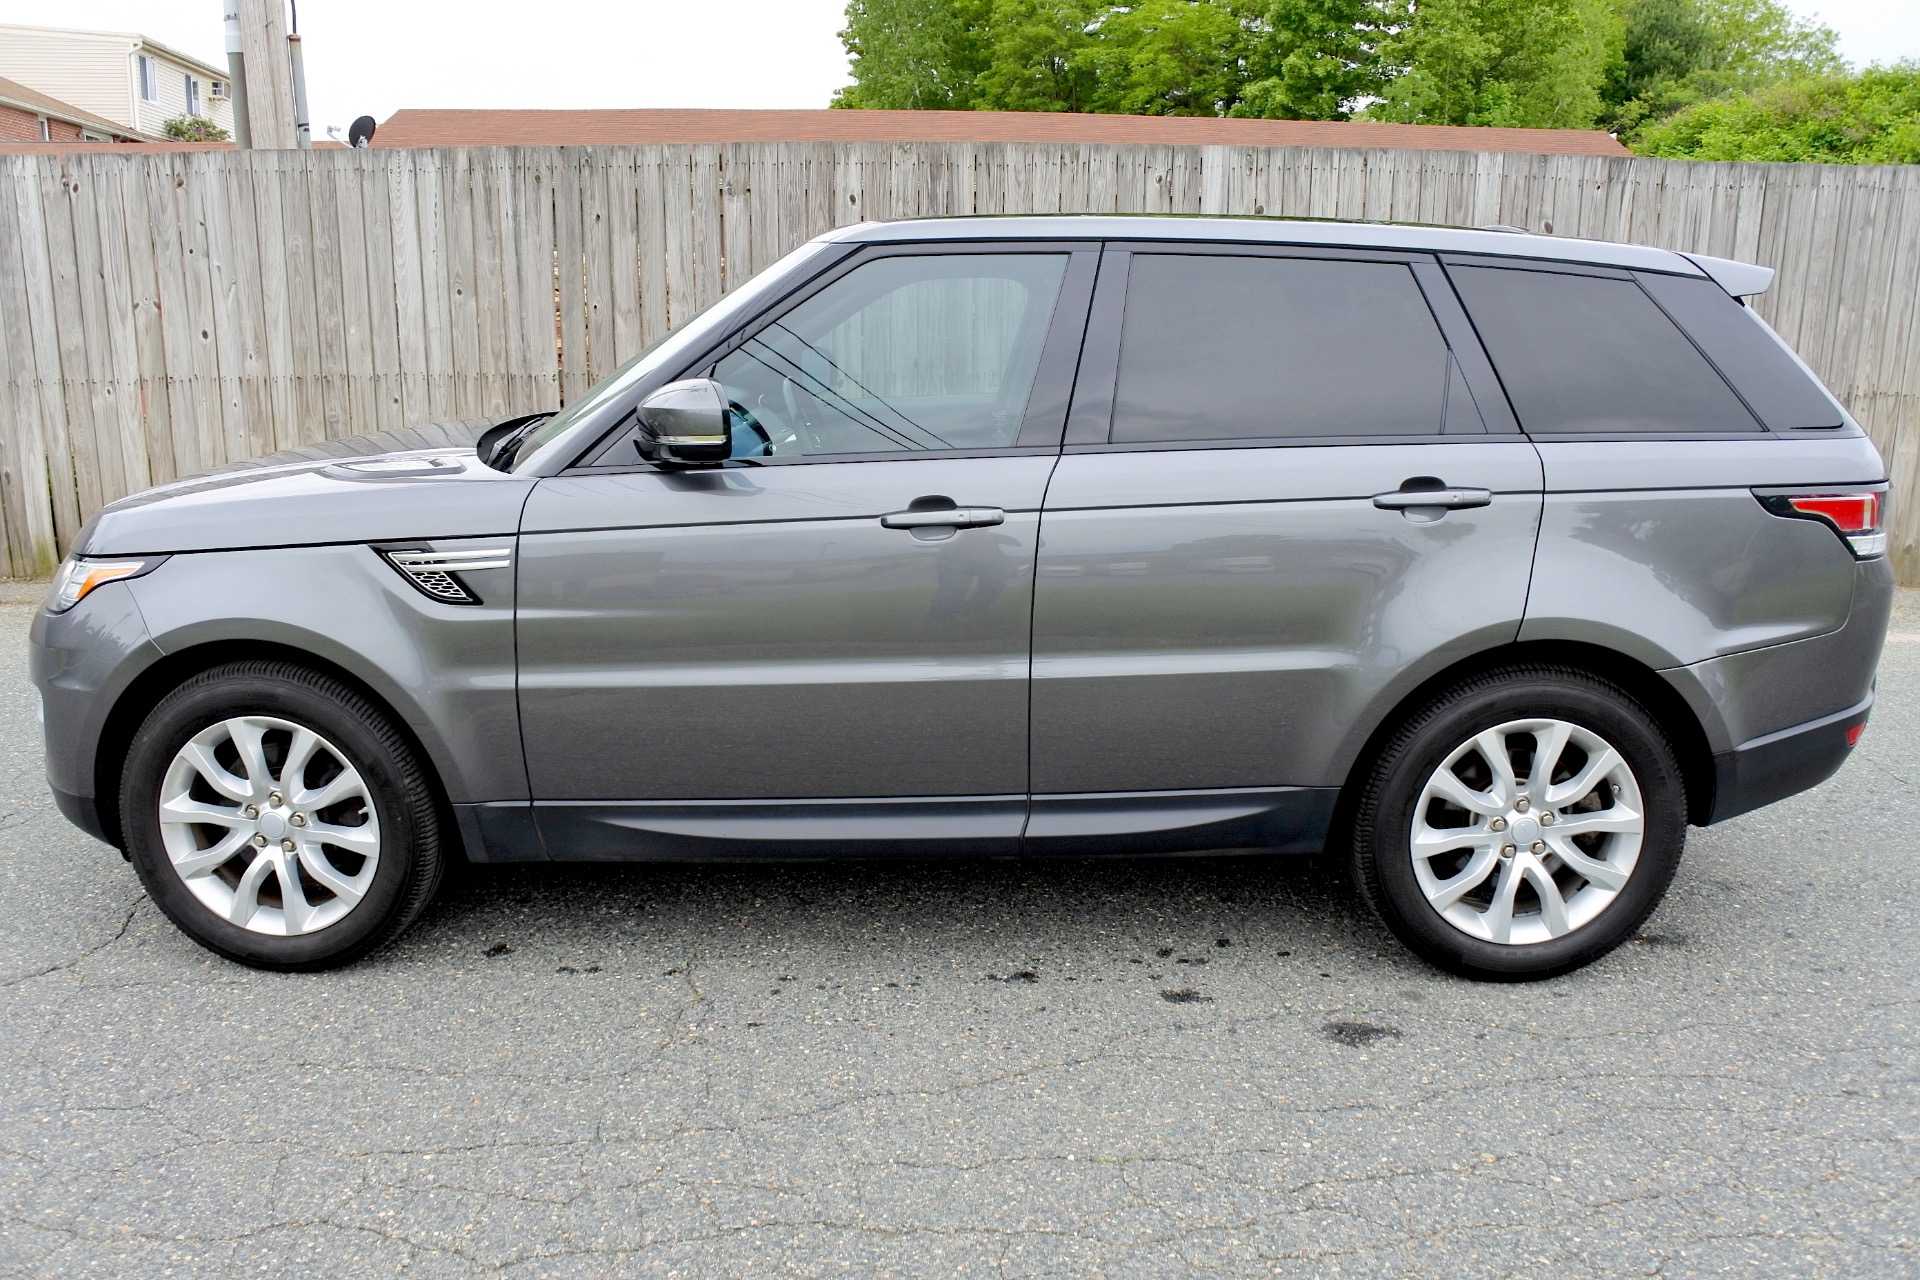 Used 2015 Land Rover Range Rover Sport 4WD 4dr HSE Used 2015 Land Rover Range Rover Sport 4WD 4dr HSE for sale  at Metro West Motorcars LLC in Shrewsbury MA 2